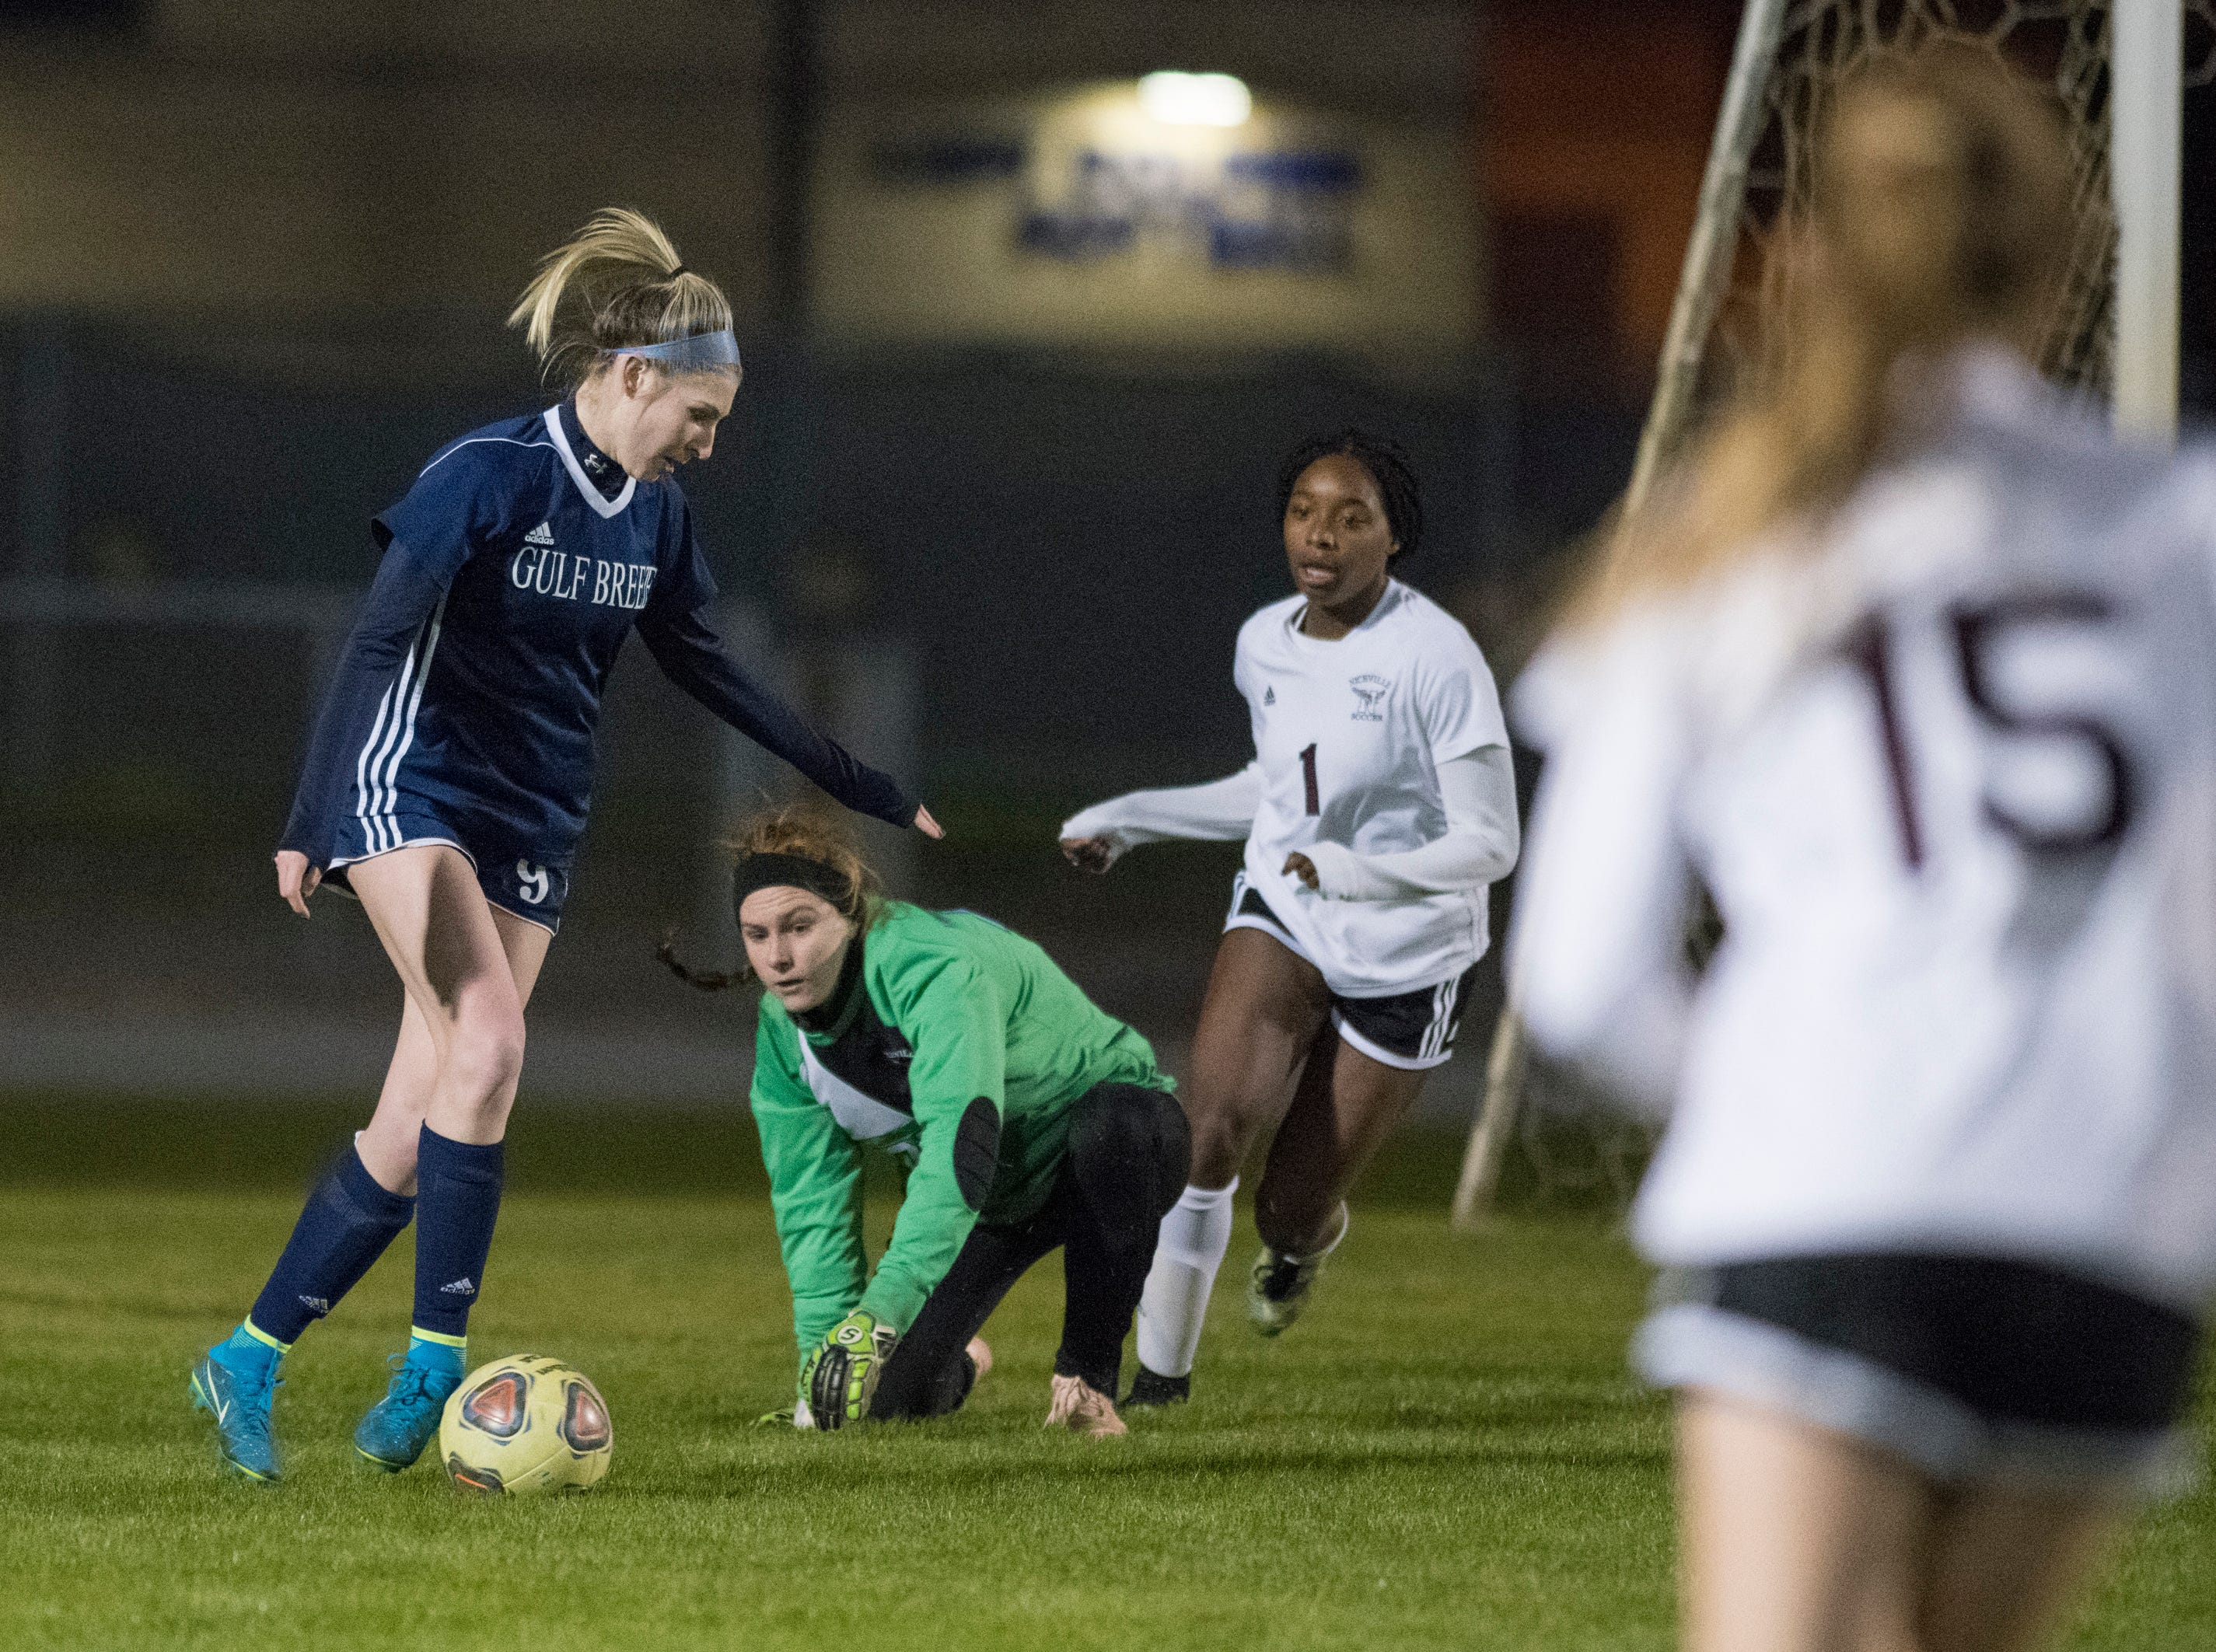 Riley Cassidy (9) dribbles past the Eagles goalie during the Niceville vs Gulf Breeze soccer game at Gulf Breeze High School on Thursday, January 10, 2019.